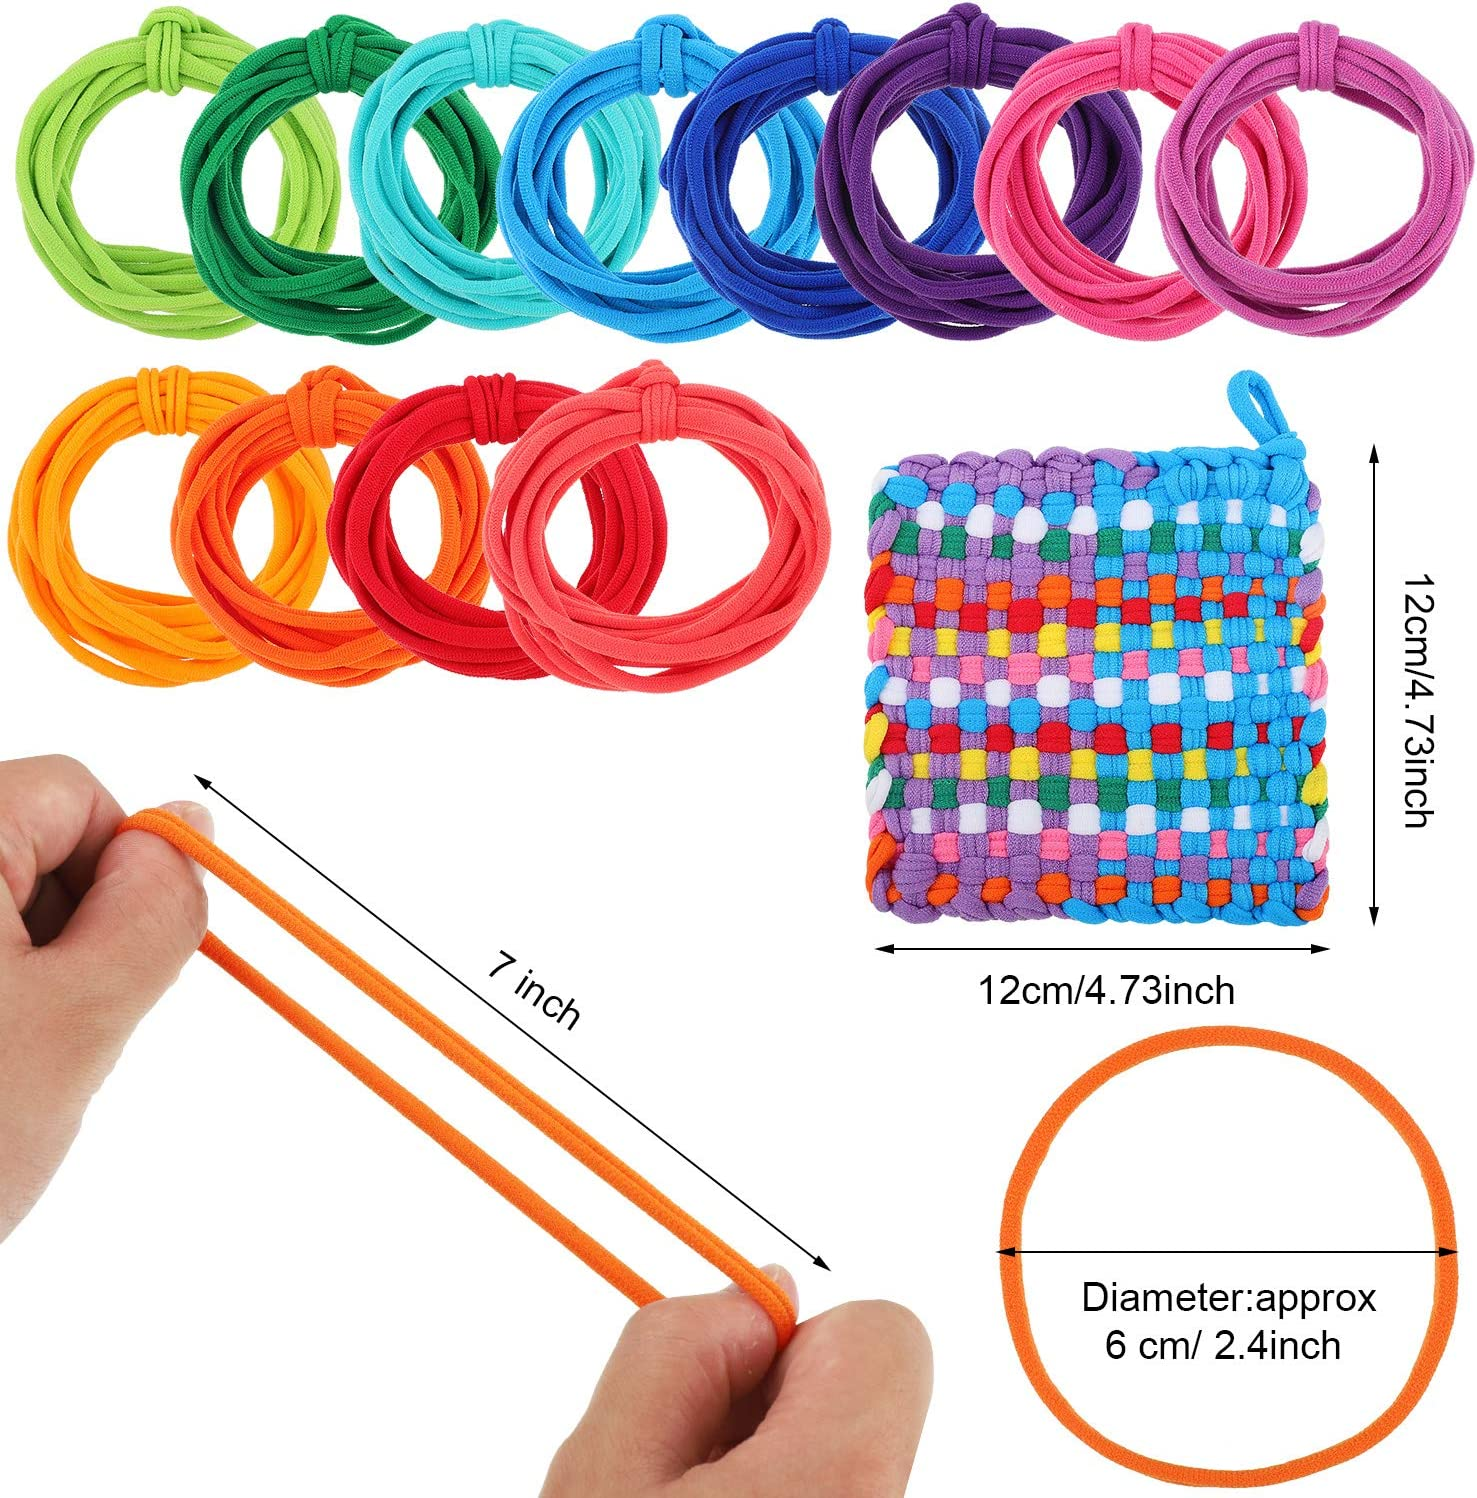 196 Pieces Compatible with 7 Inches Weaving Loom Loom Potholder Loops Weaving Craft Loops 12 Multiple Colors Cotton Loom Loops for DIY Crafts Supplies